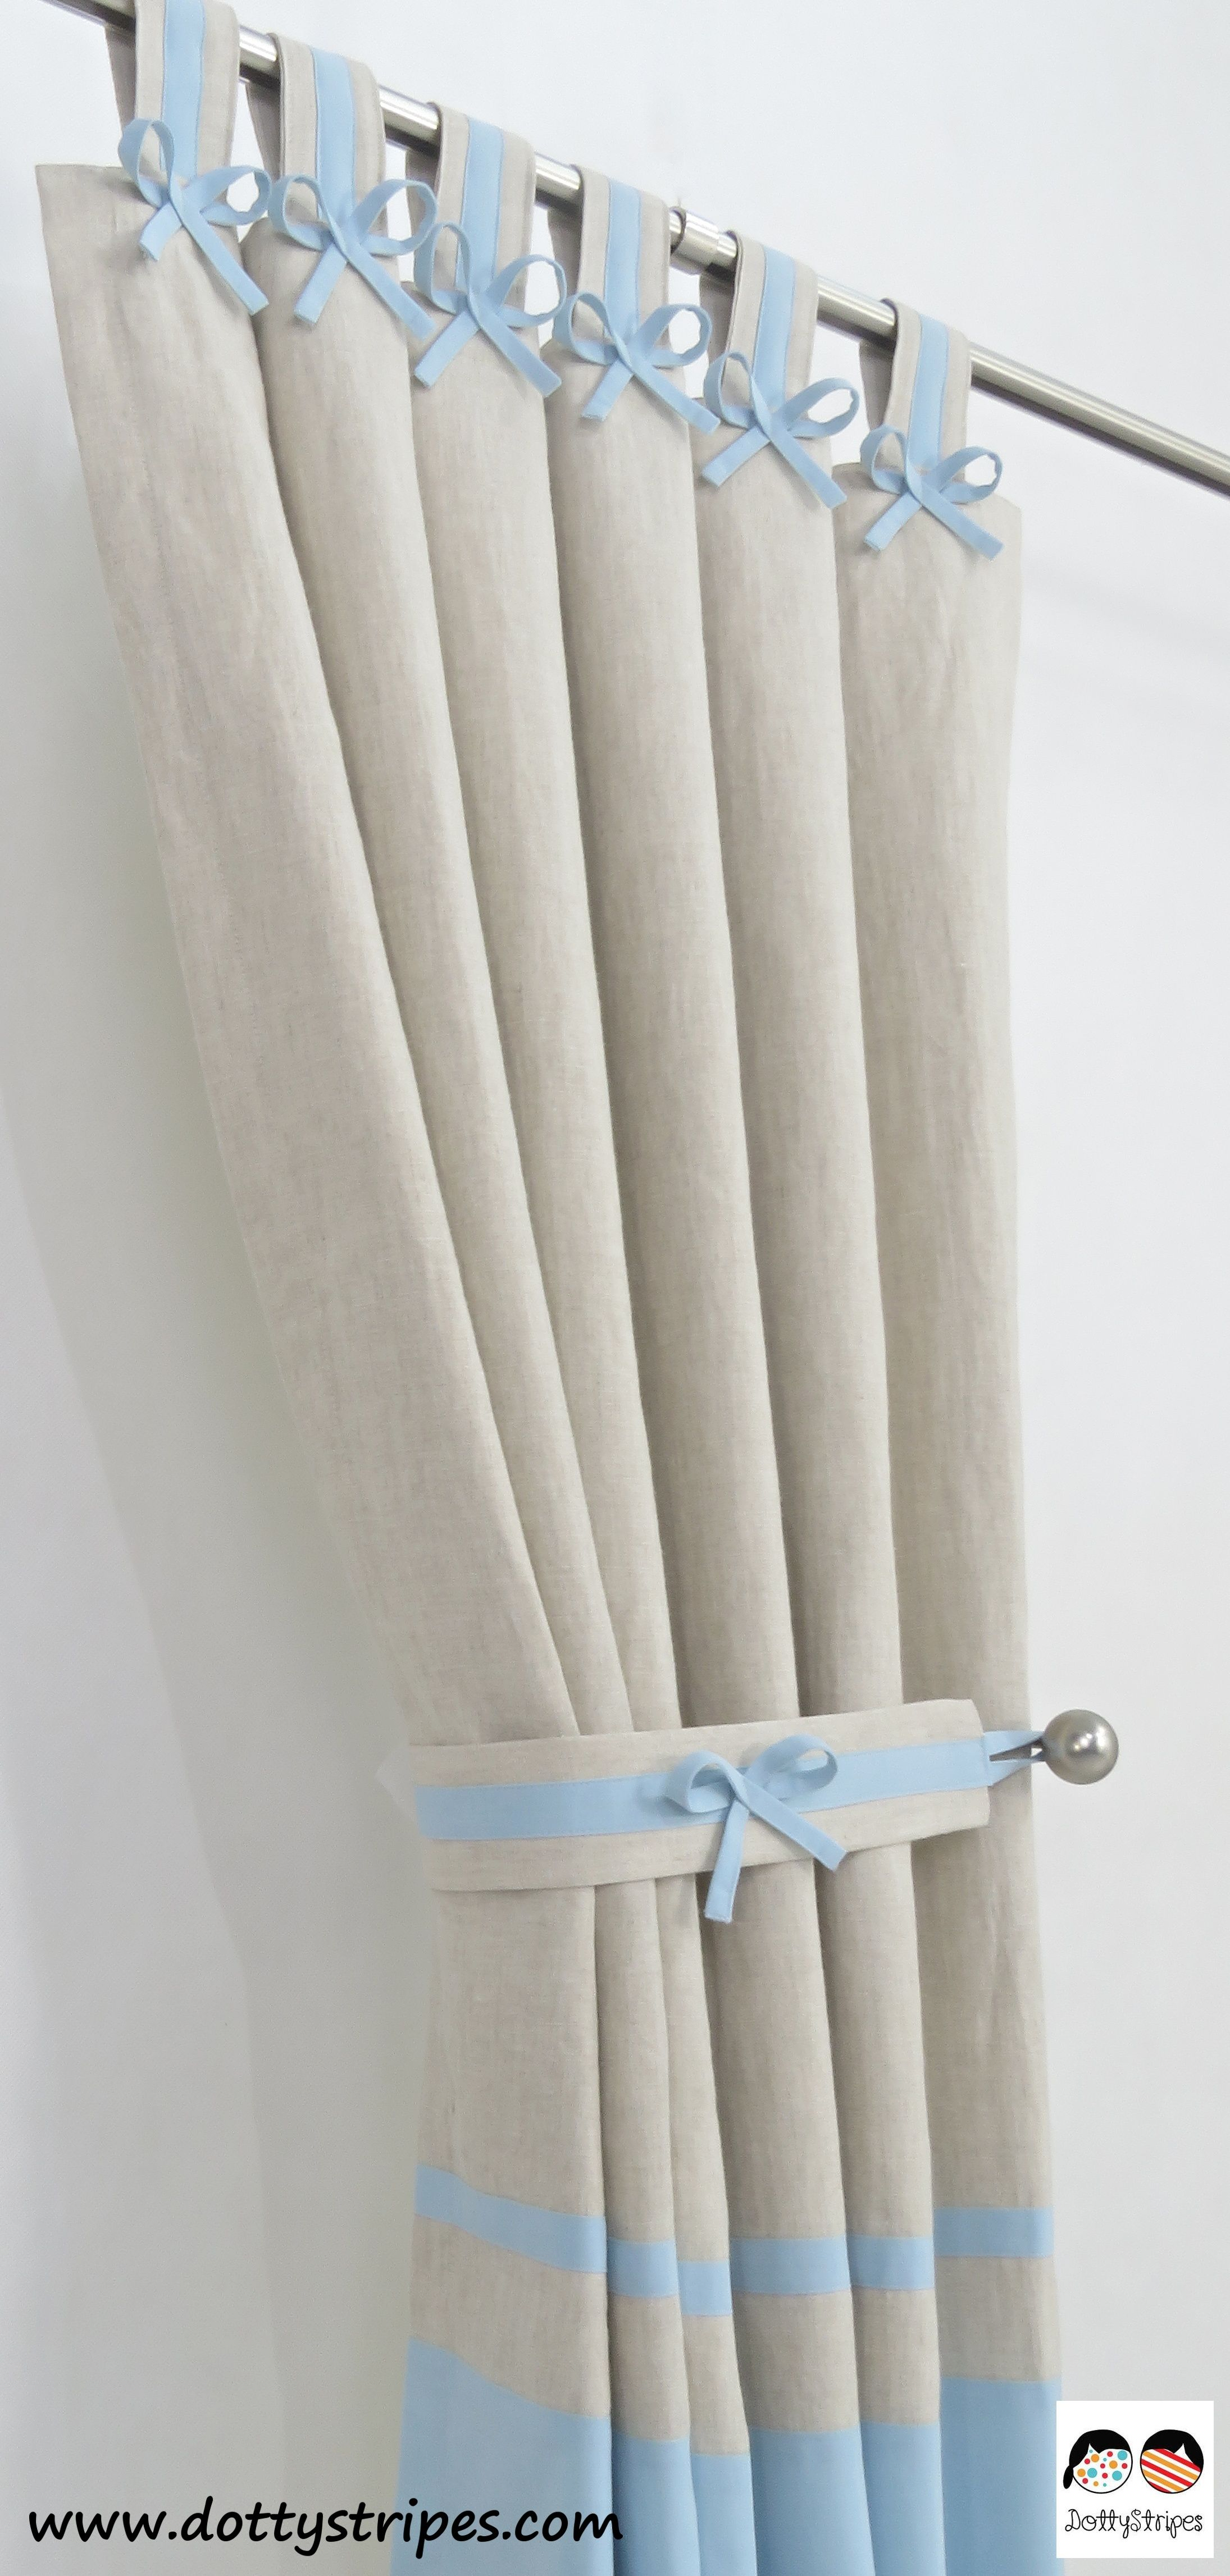 Boys Nursery Curtains Baby Blue And Natural Oatmeal Linen Handmade With Beautiful Bows Custom Sizes Available Highest Quality Guaranteed